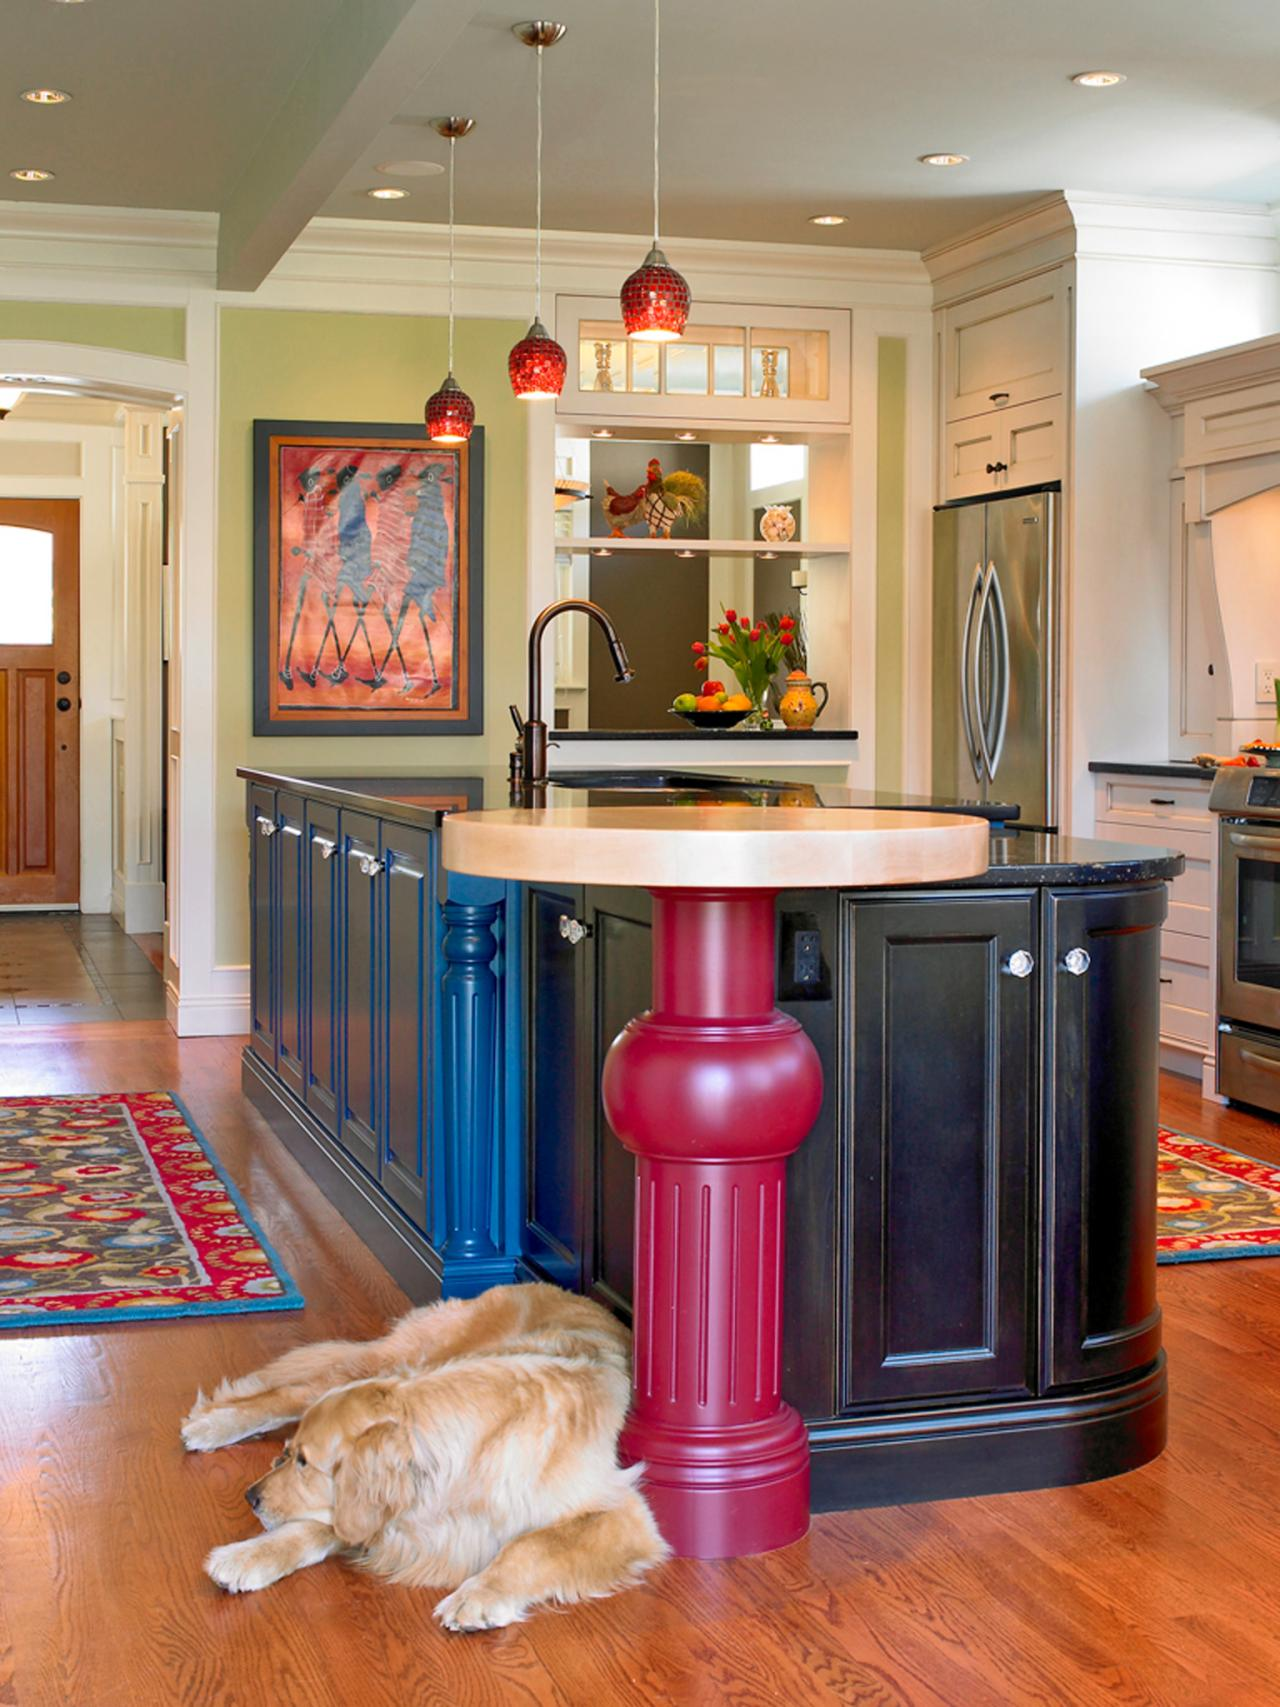 colorful kitchen cabinets ideas 30 colorful kitchen design ideas from hgtv kitchen ideas 16768